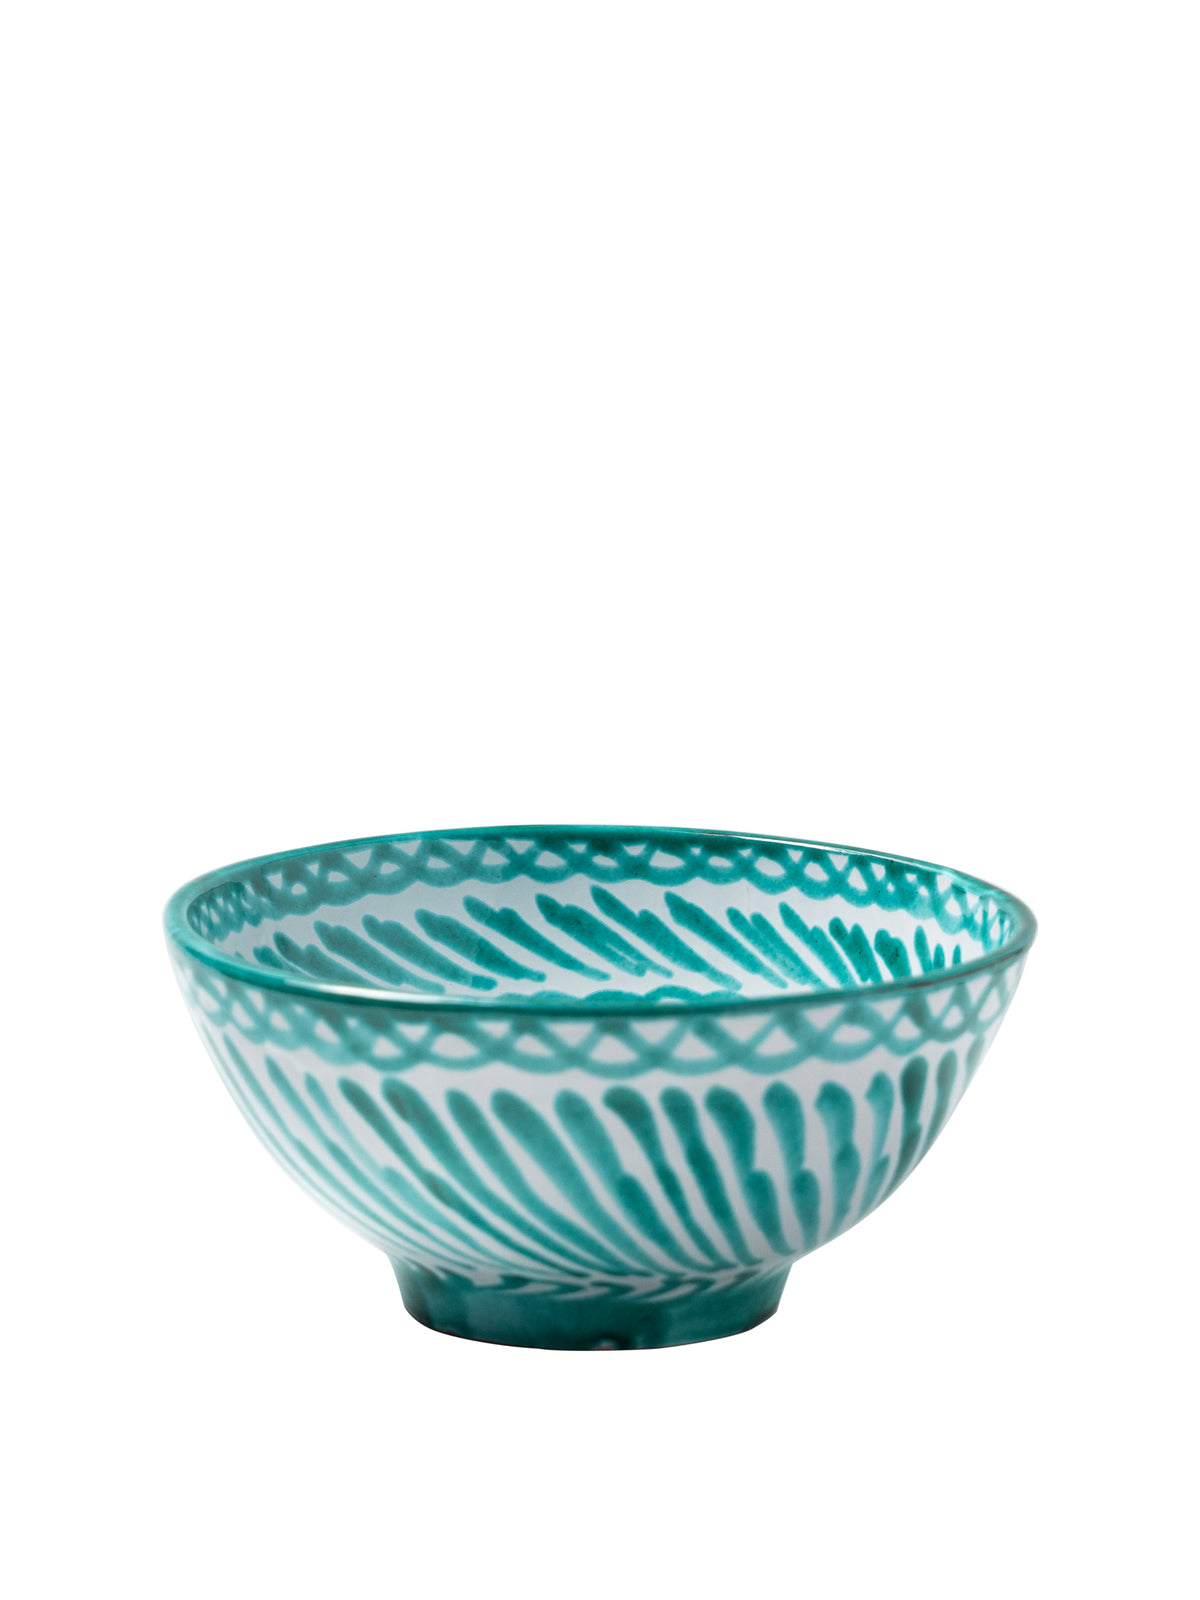 Casa Verde Medium Bowl with Hand-painted Designs